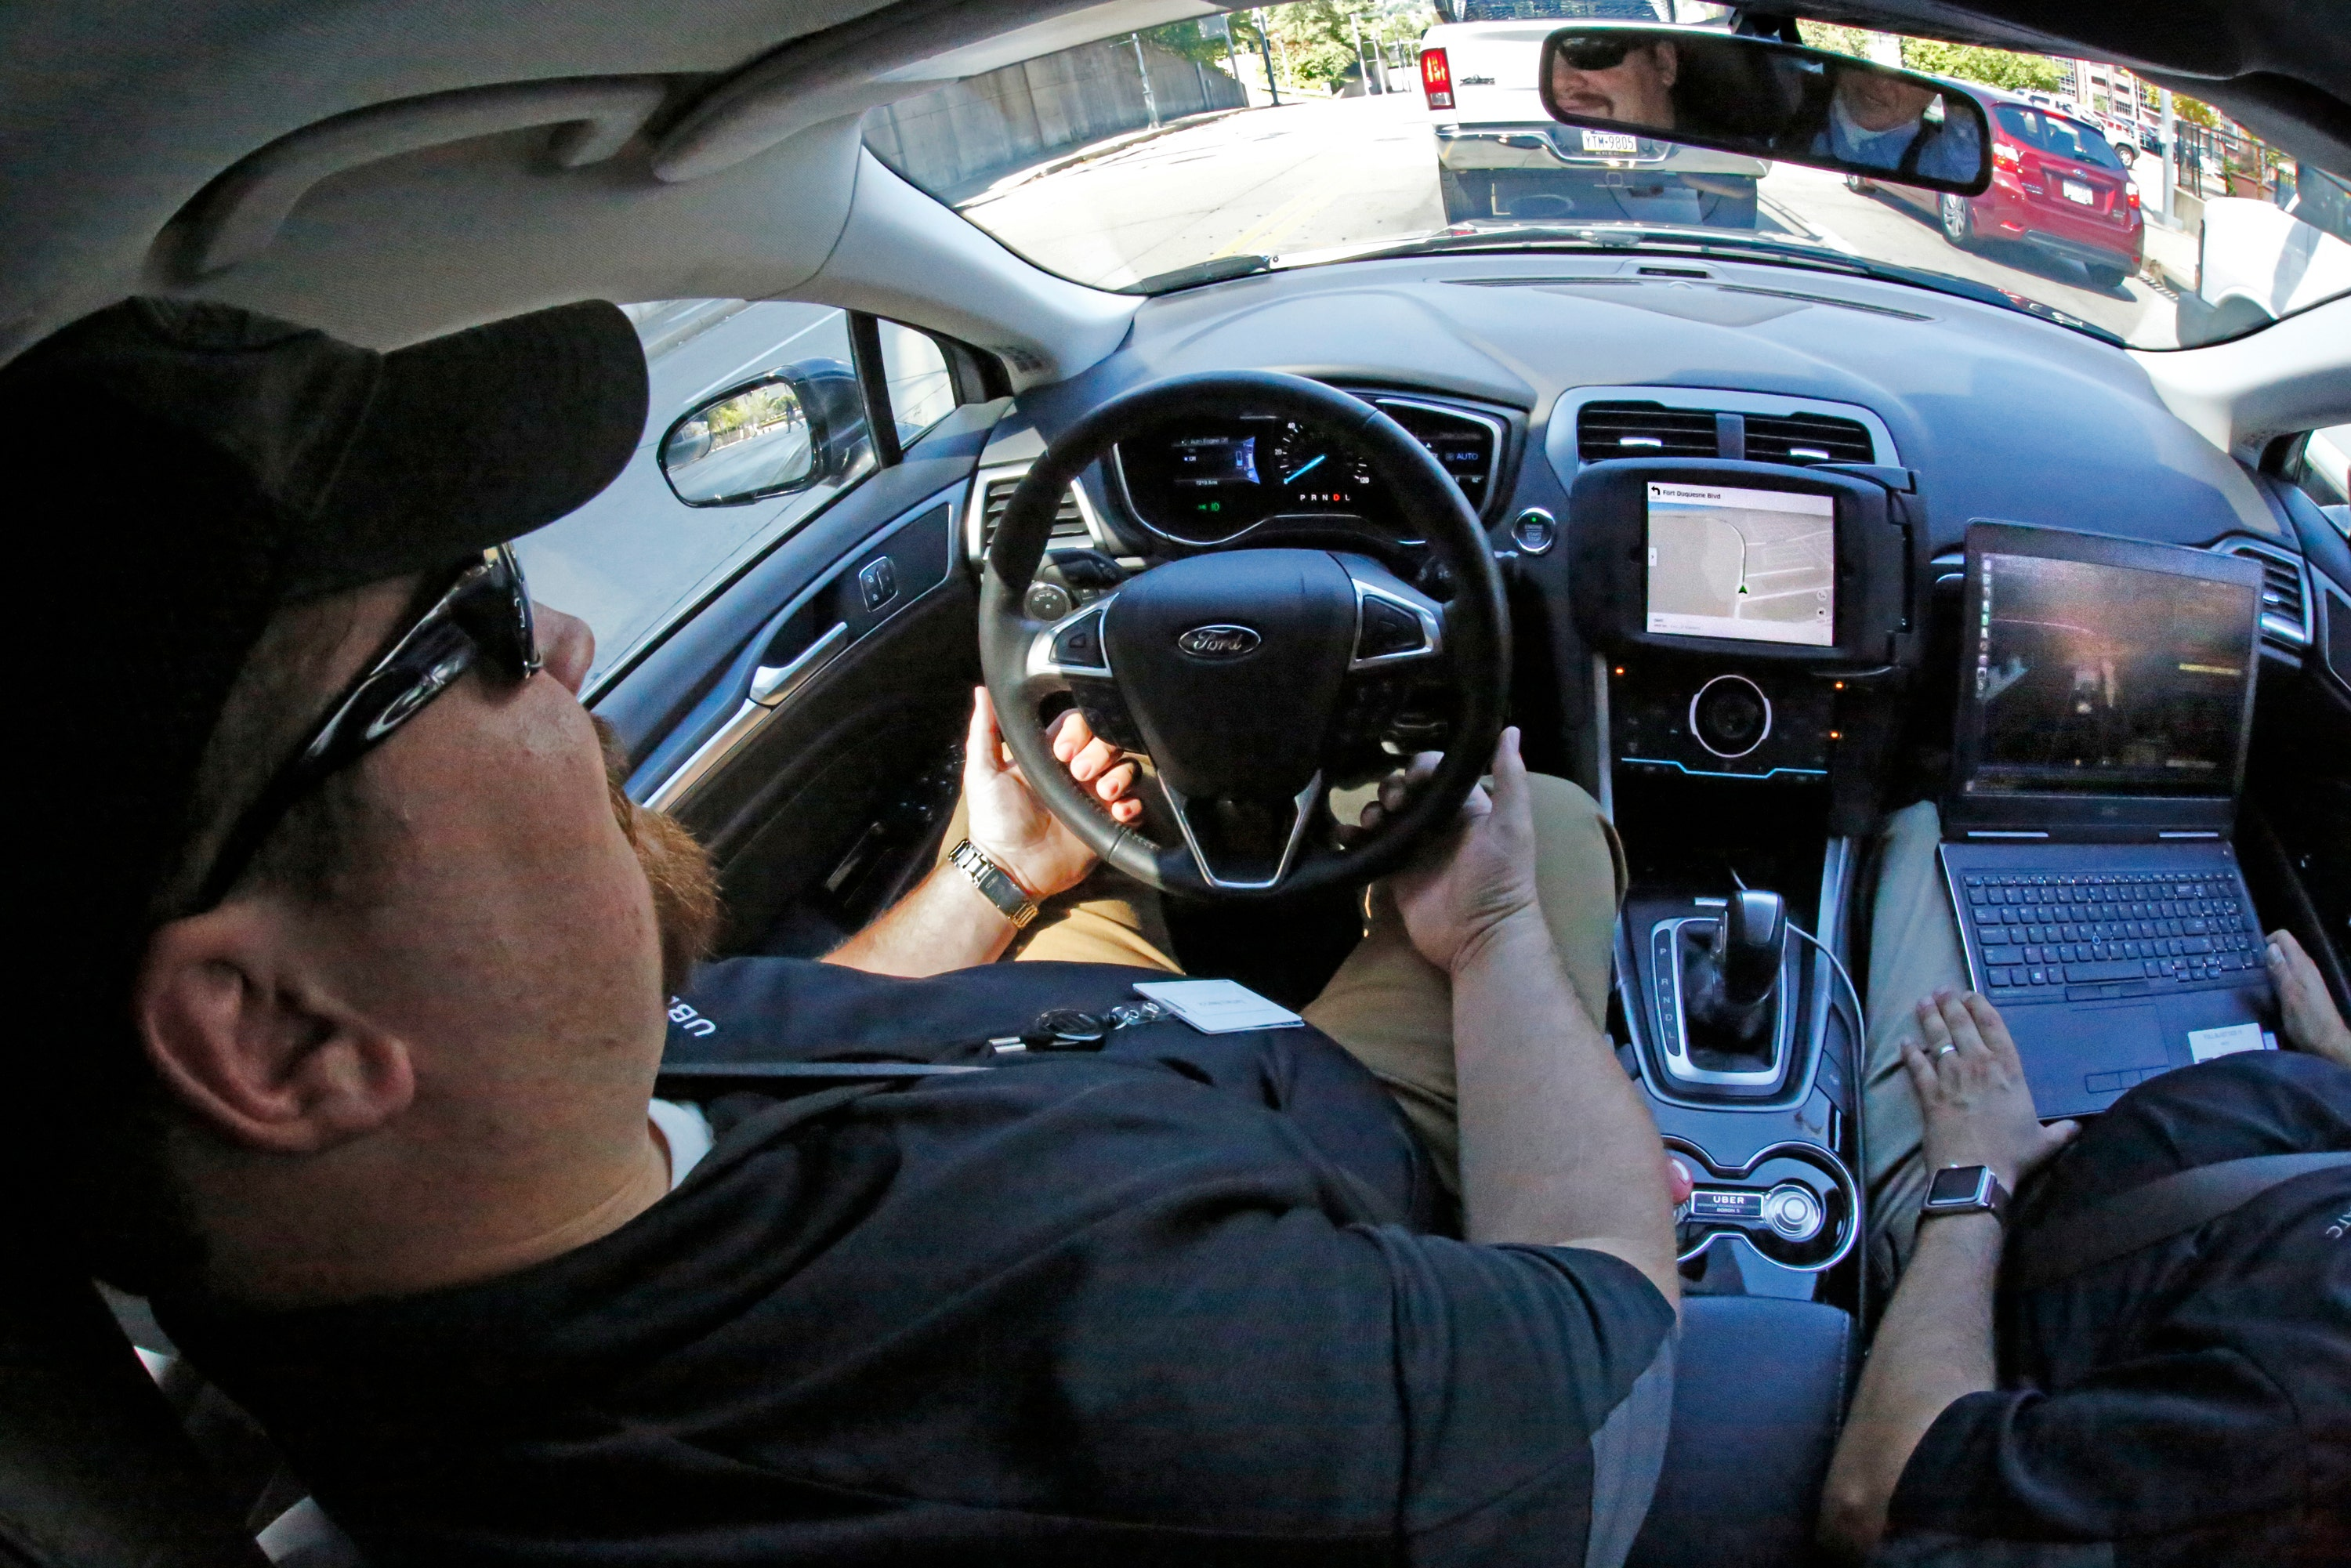 Companies Developing Self Driving Car Technology